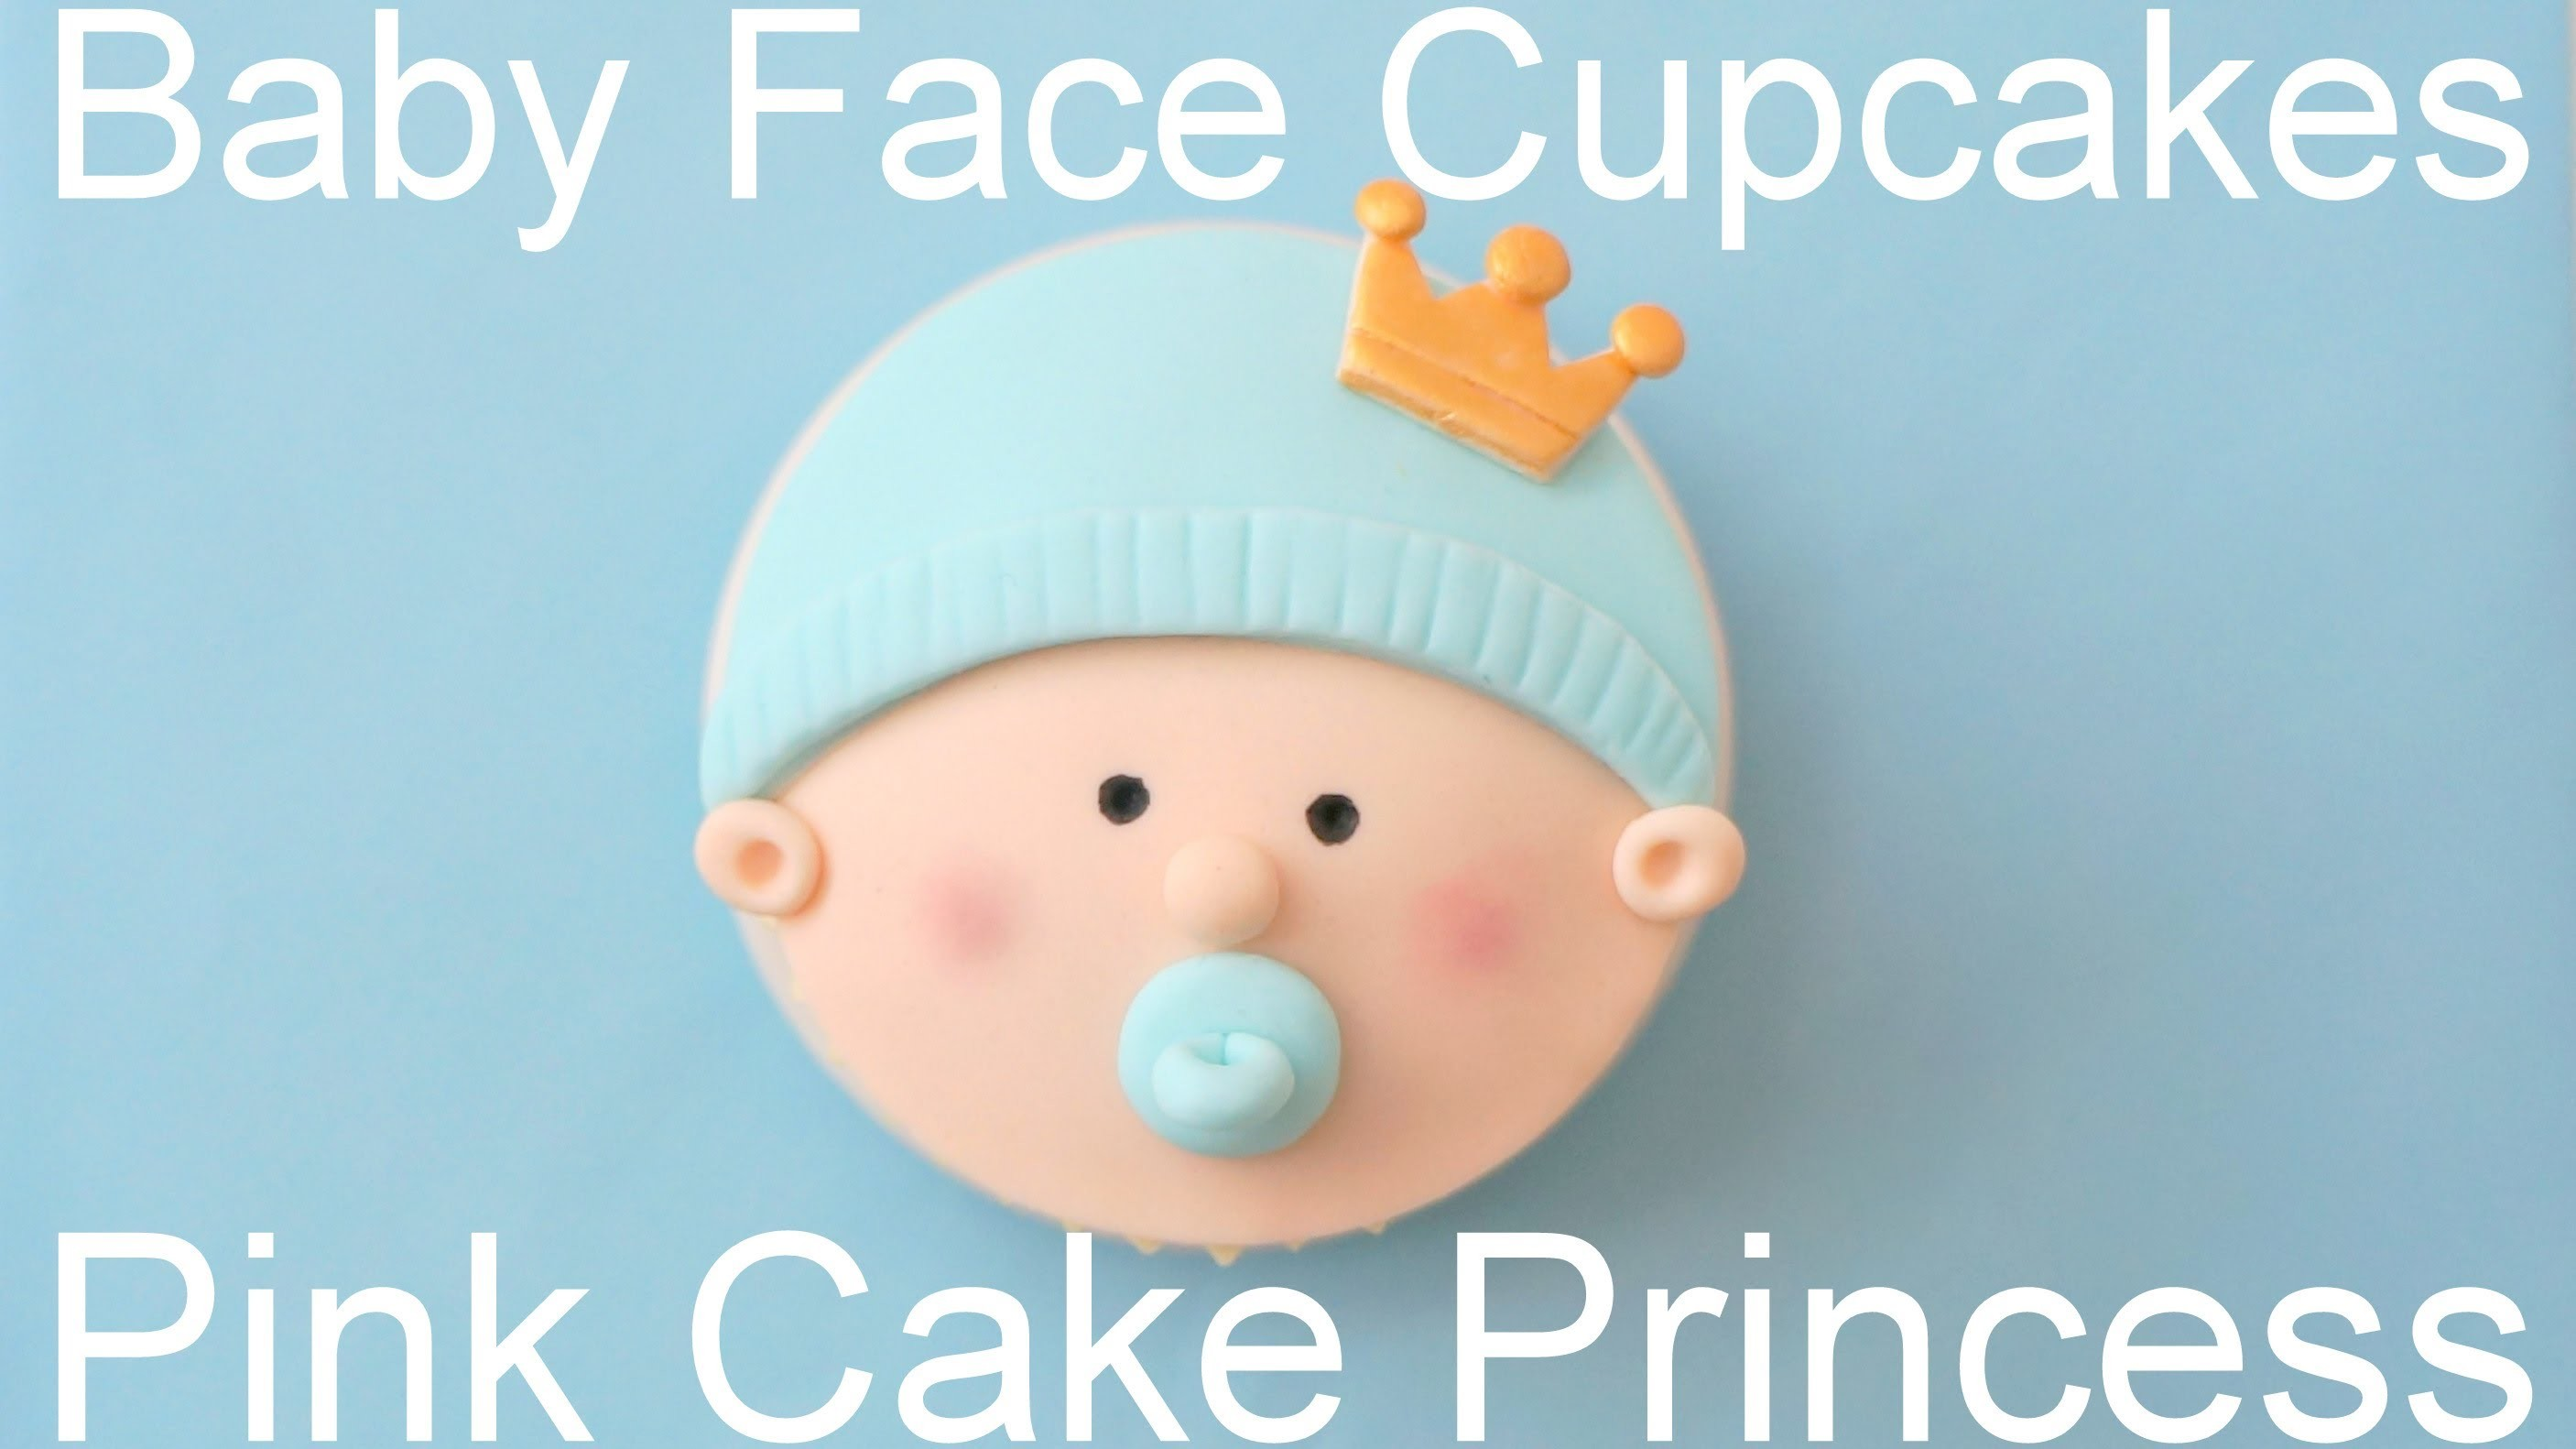 How to Make Baby Shower Cupcakes - Royal Baby Face Cupcakes